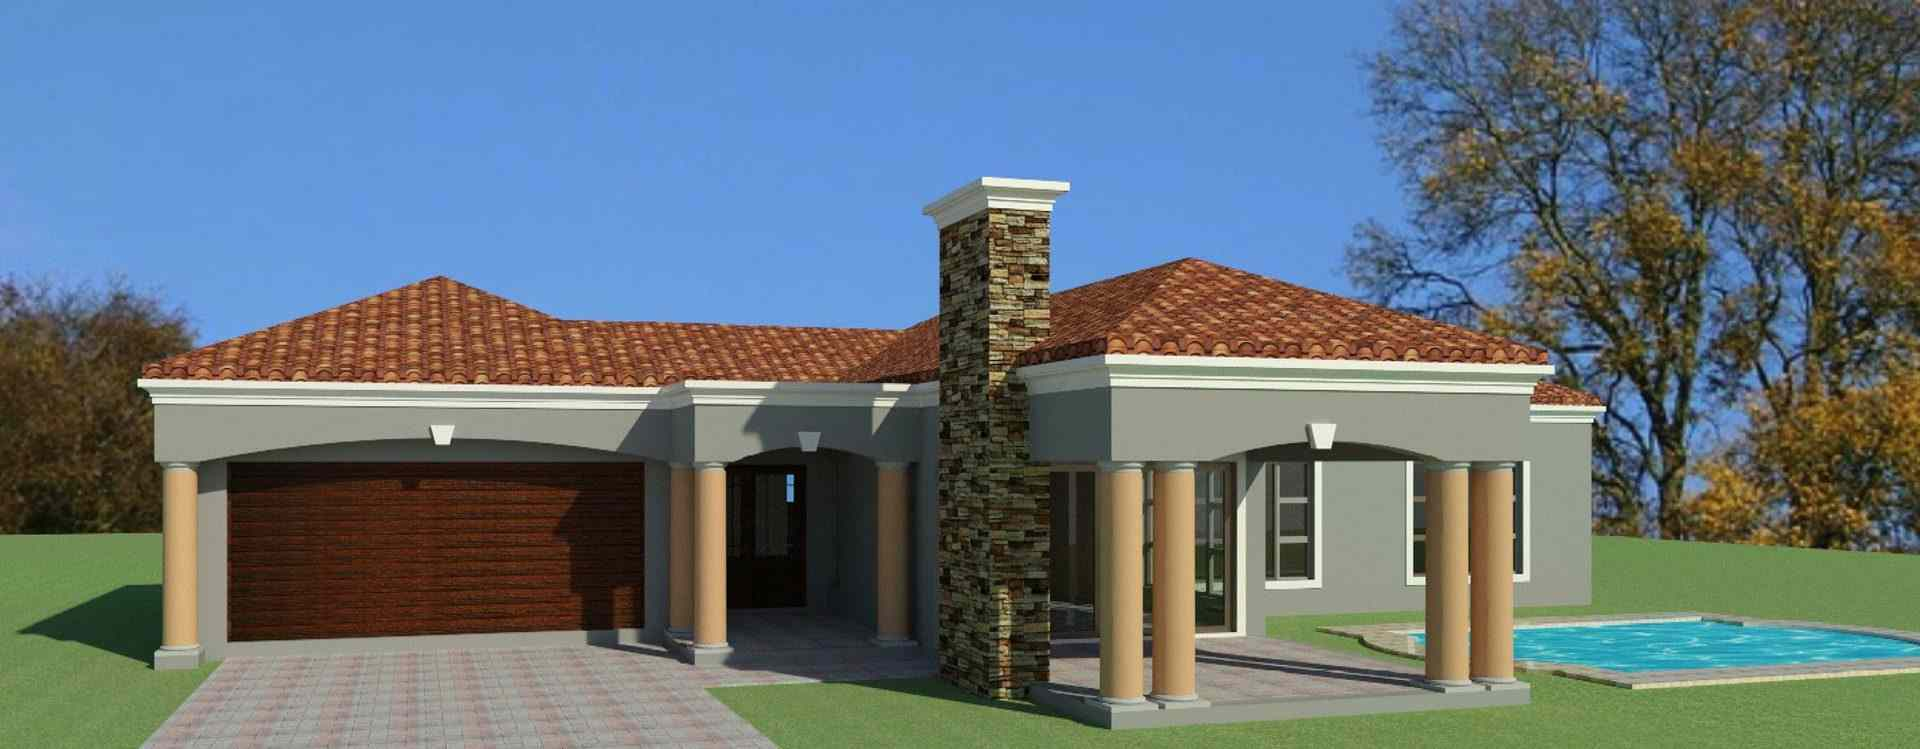 3 Bedroom House Plans South African House Designs